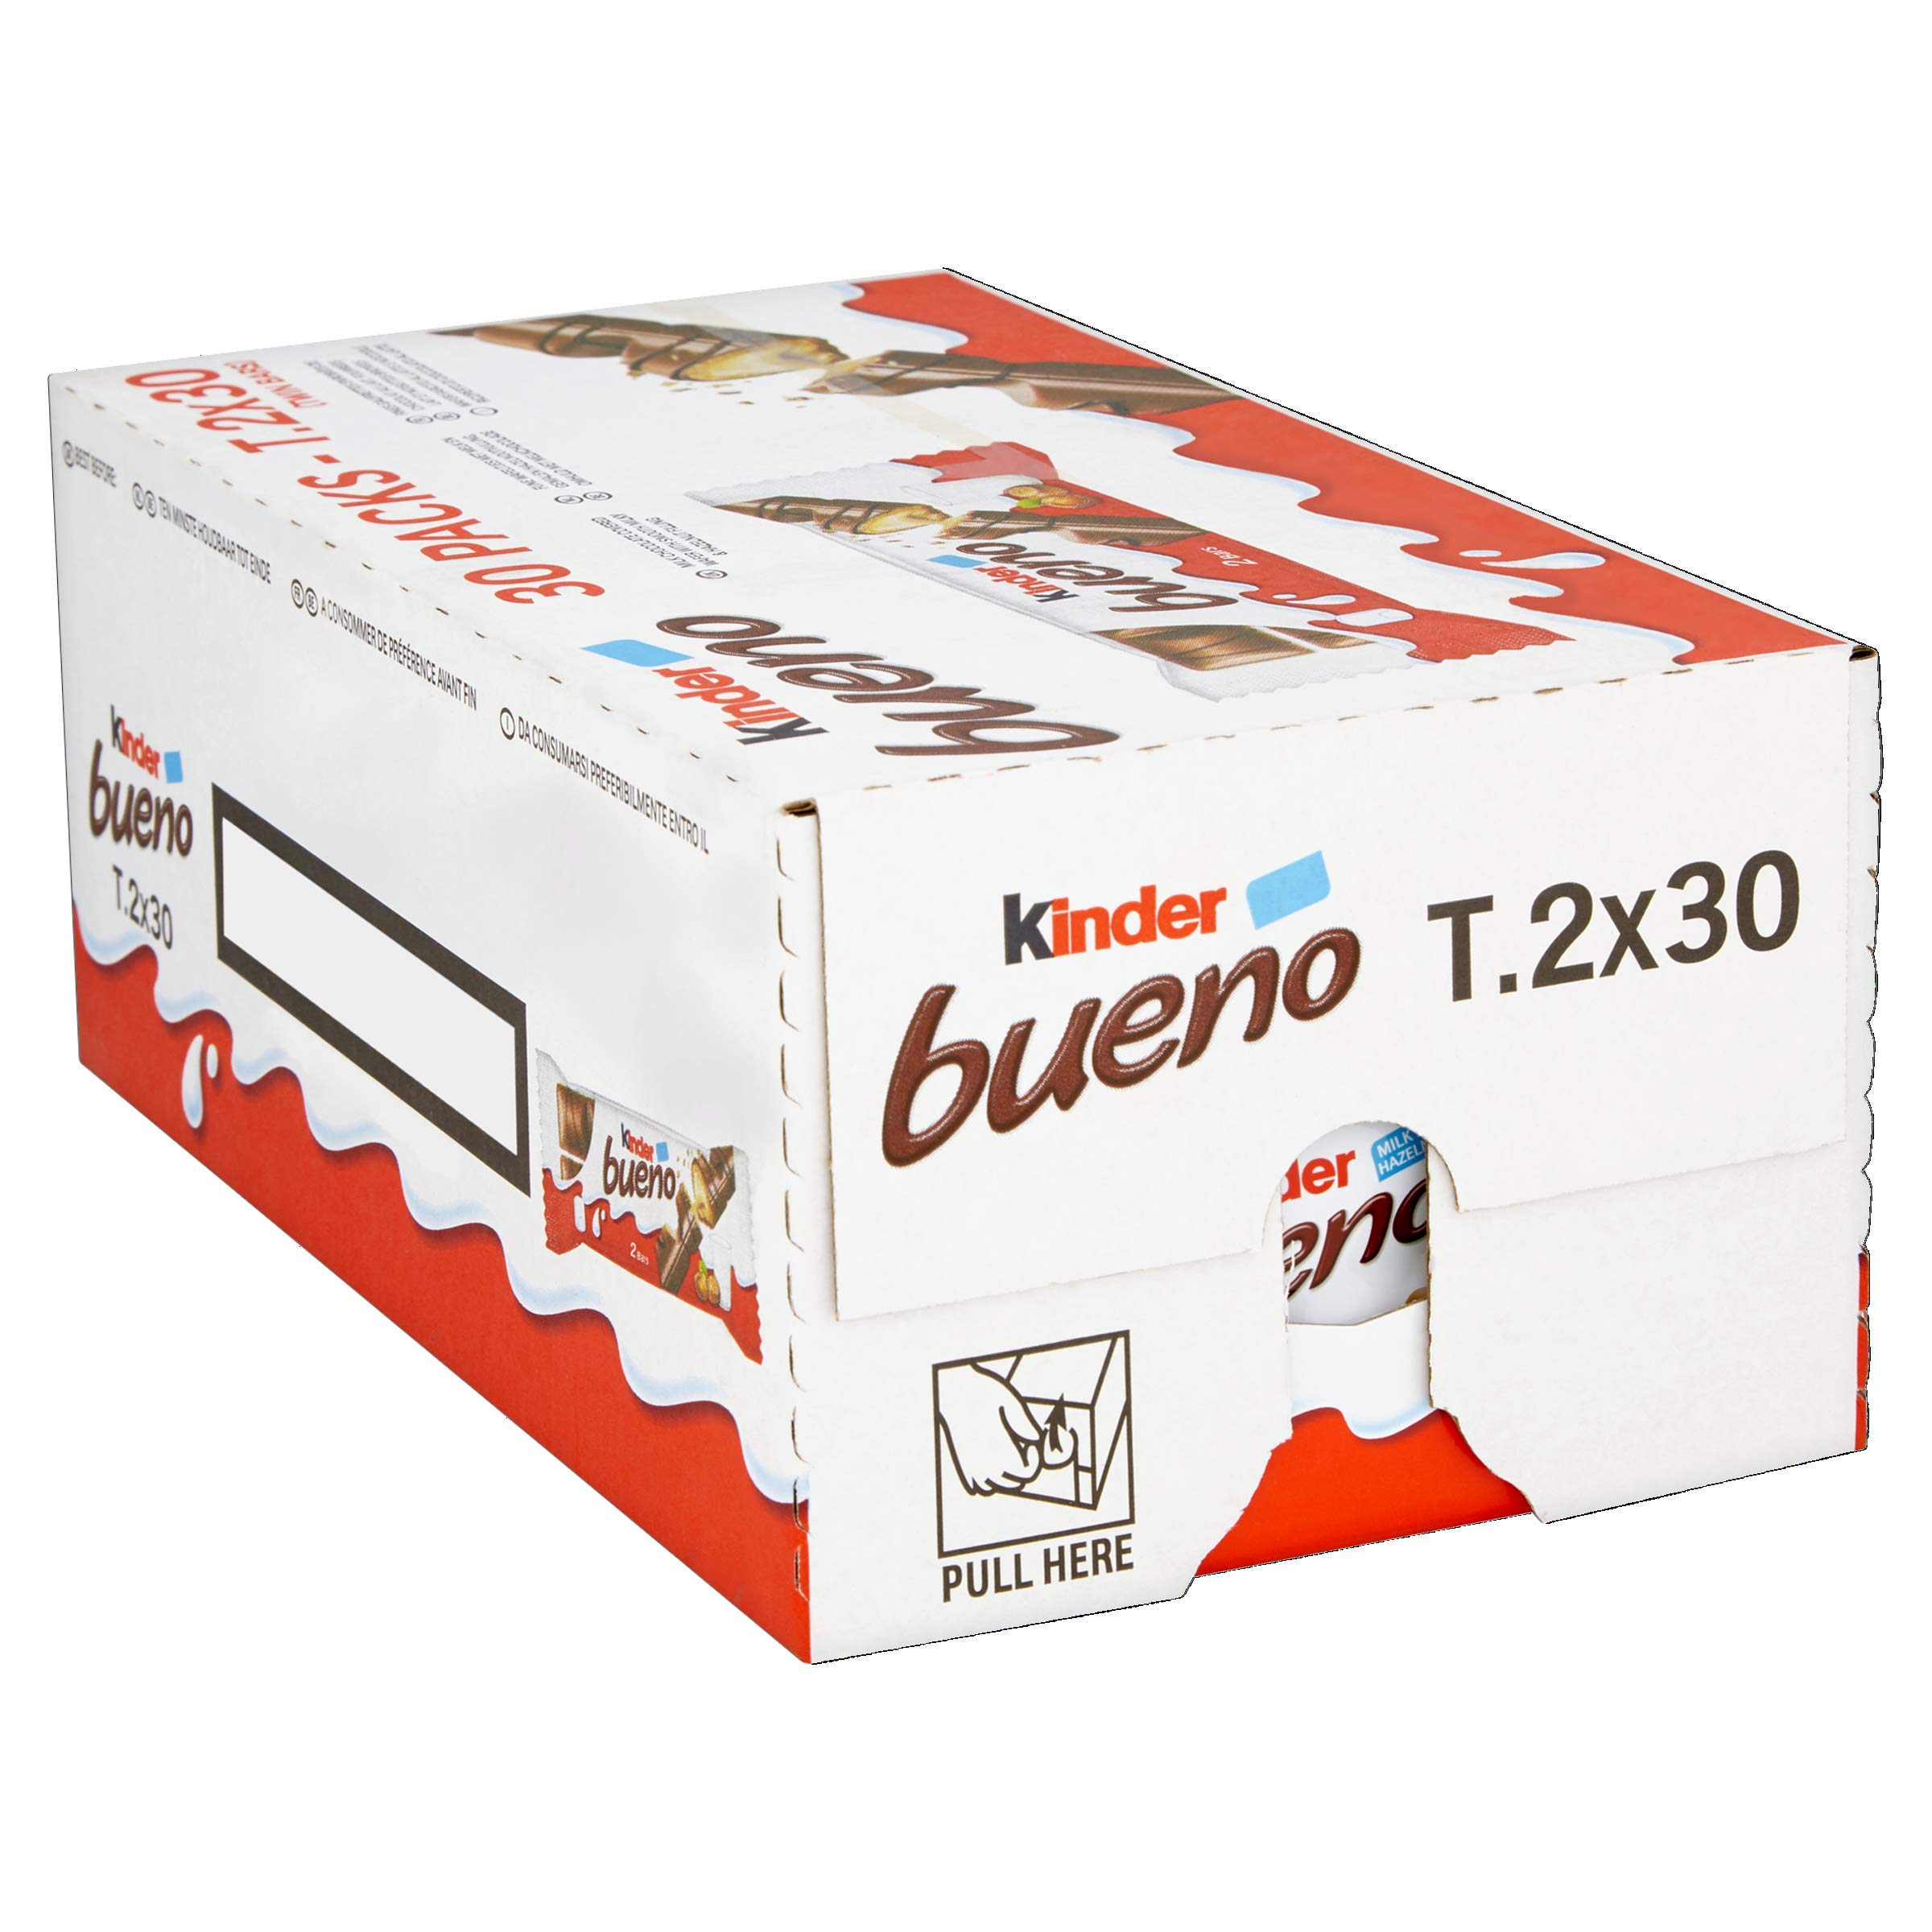 Ferrero Kinder Bueno Wafer Cookies, 1.5 Ounce (43 g) (Pack of 30)